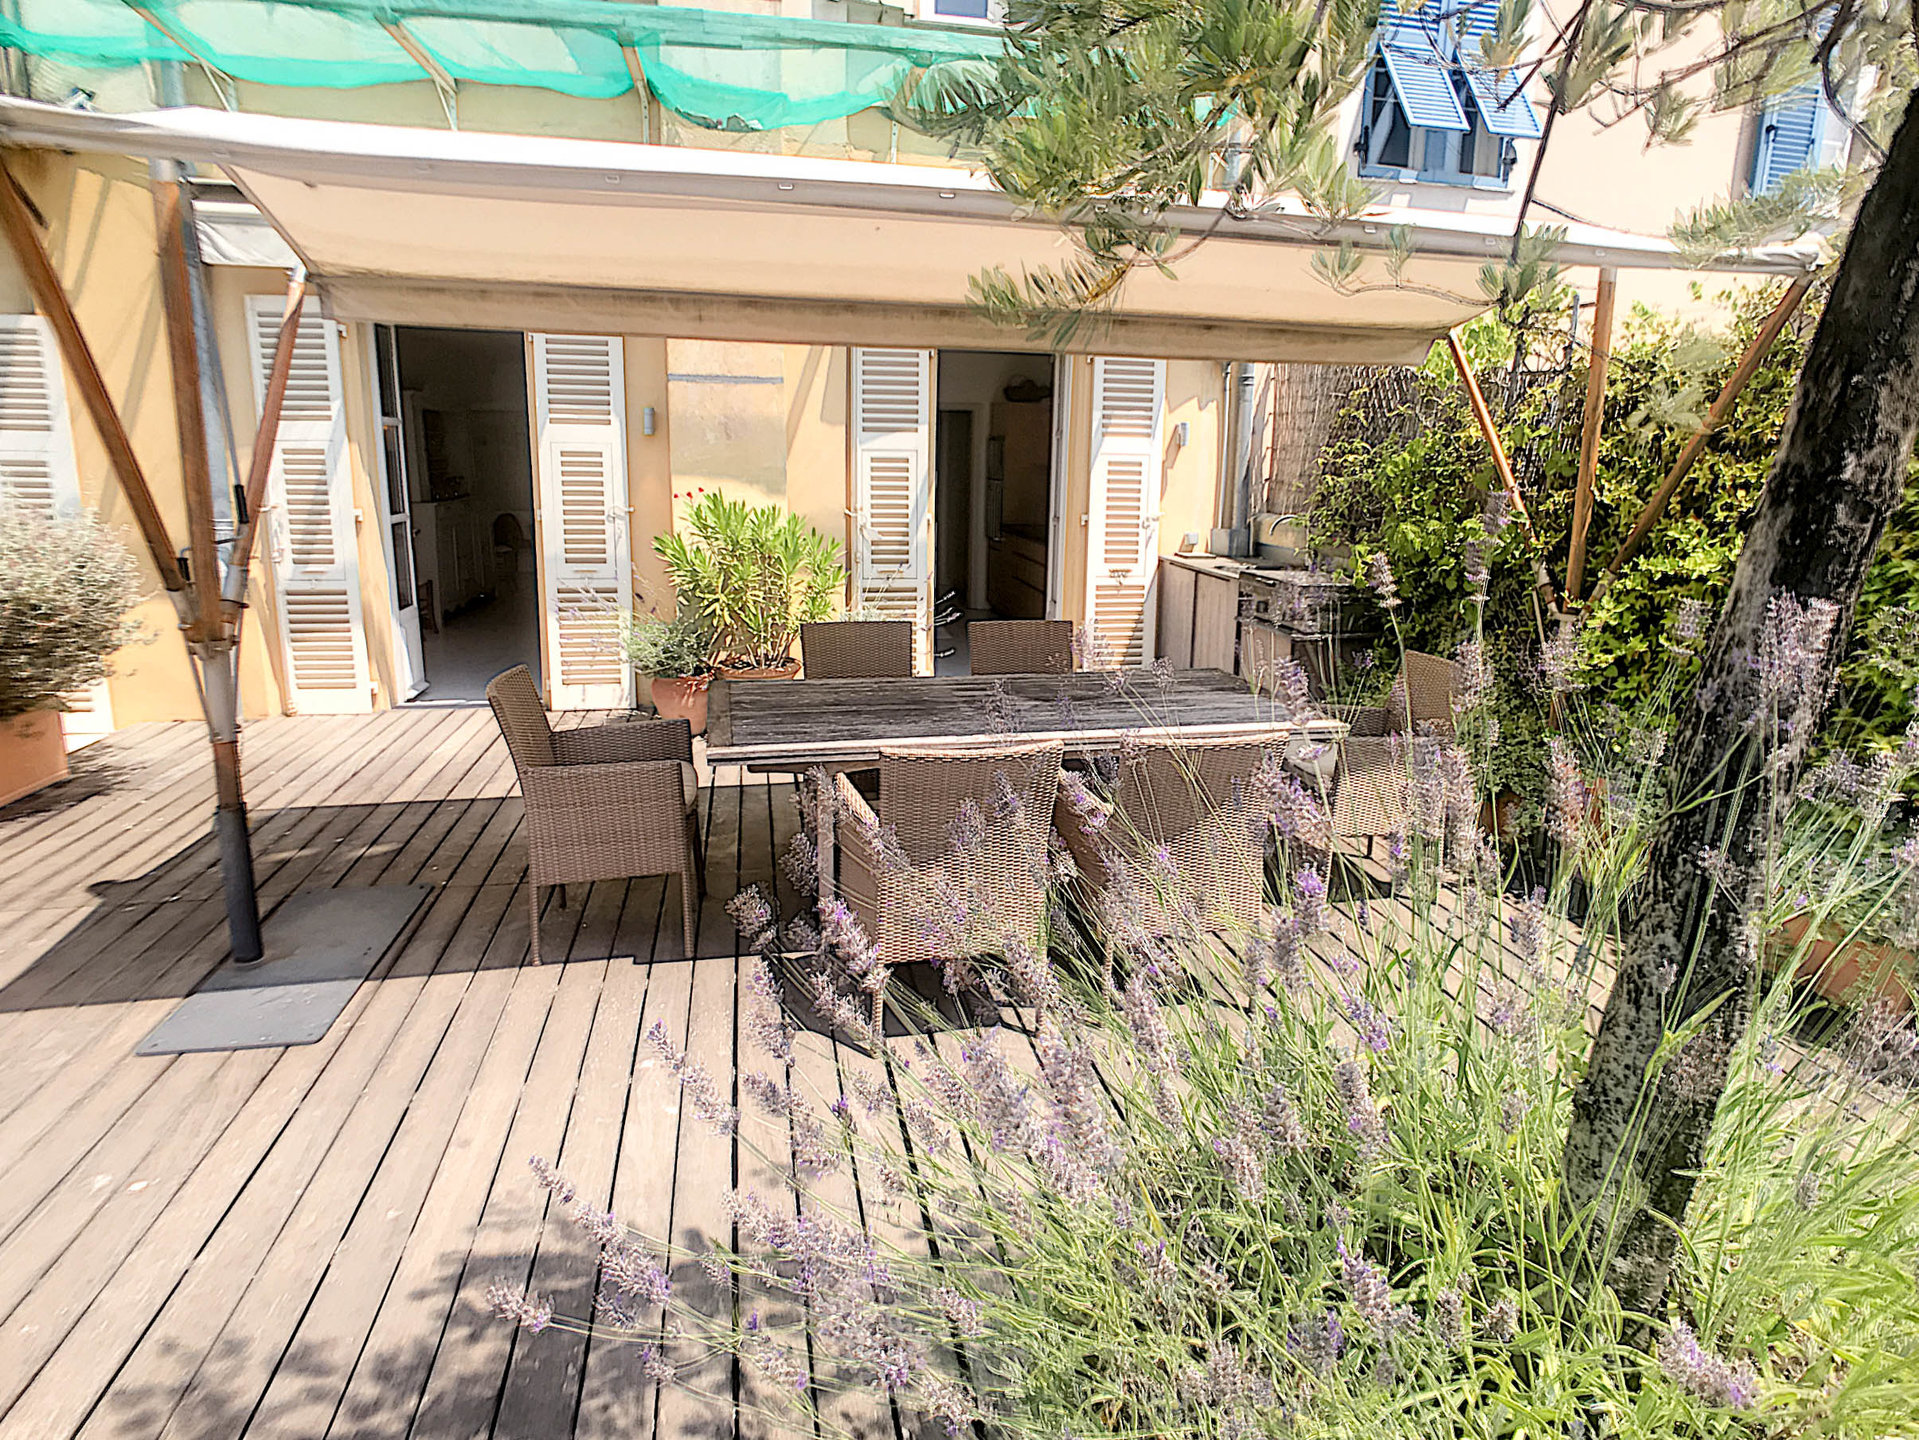 SALE Apartment 4 Rooms Vieux Nice Palais de Justice 90m2 Terrace Calm!